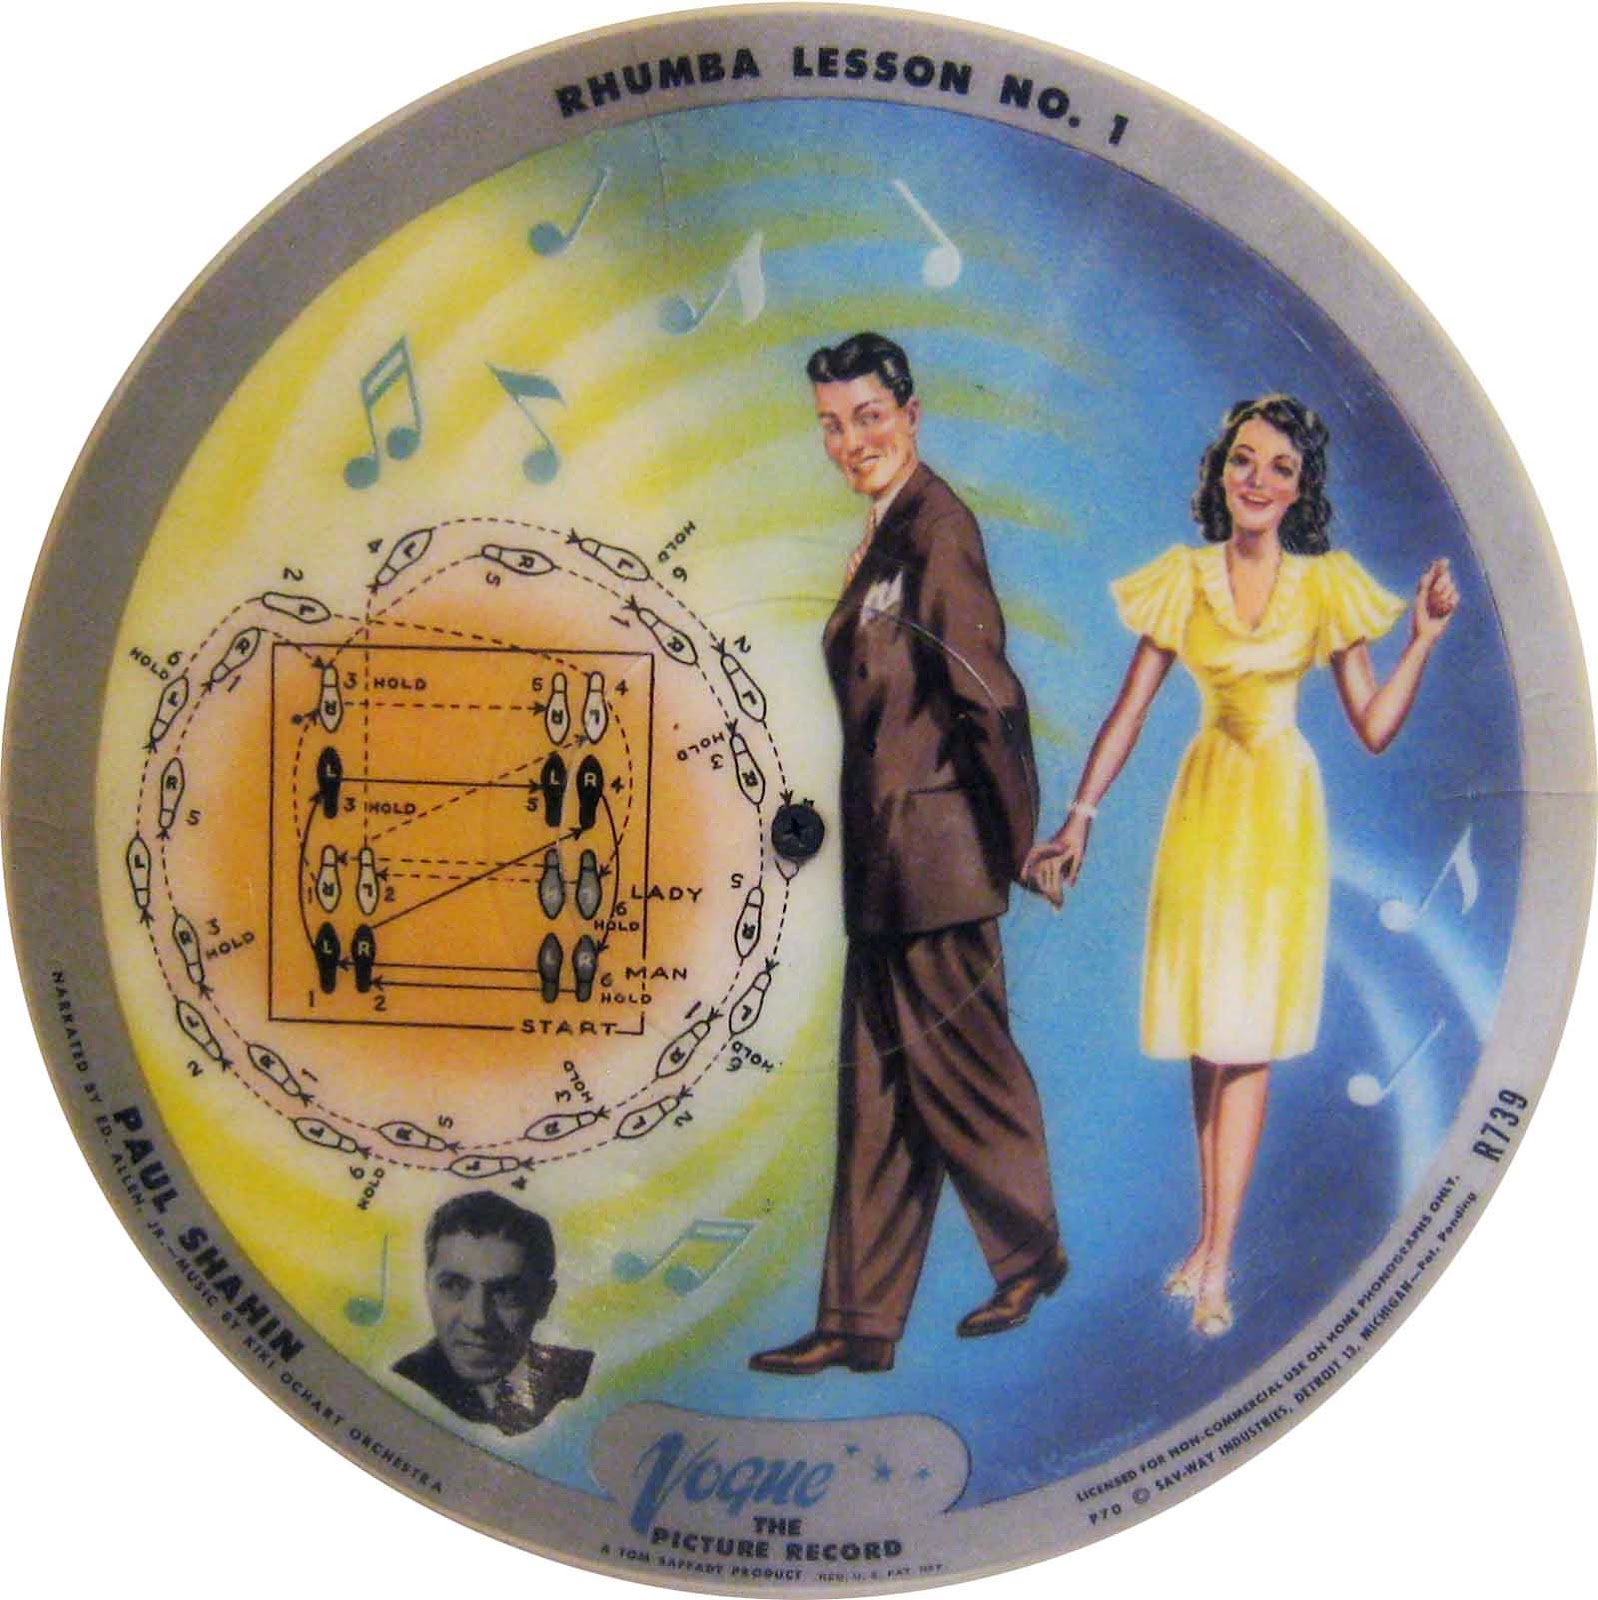 Rhumba lesson record shows dance steps